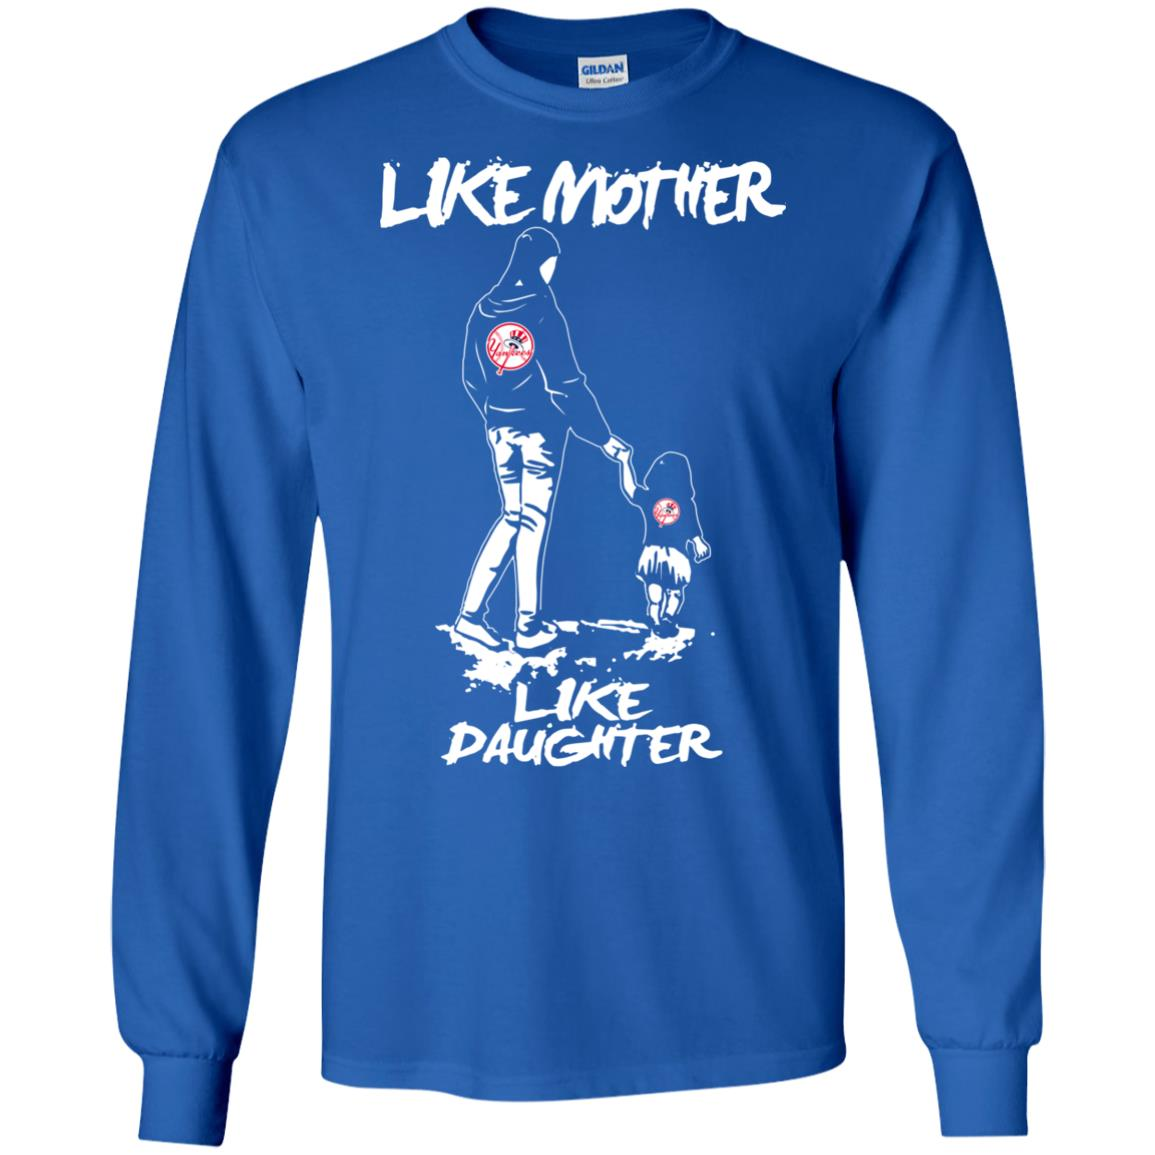 Like Mother Like Daughter New York Yankees T Shirts